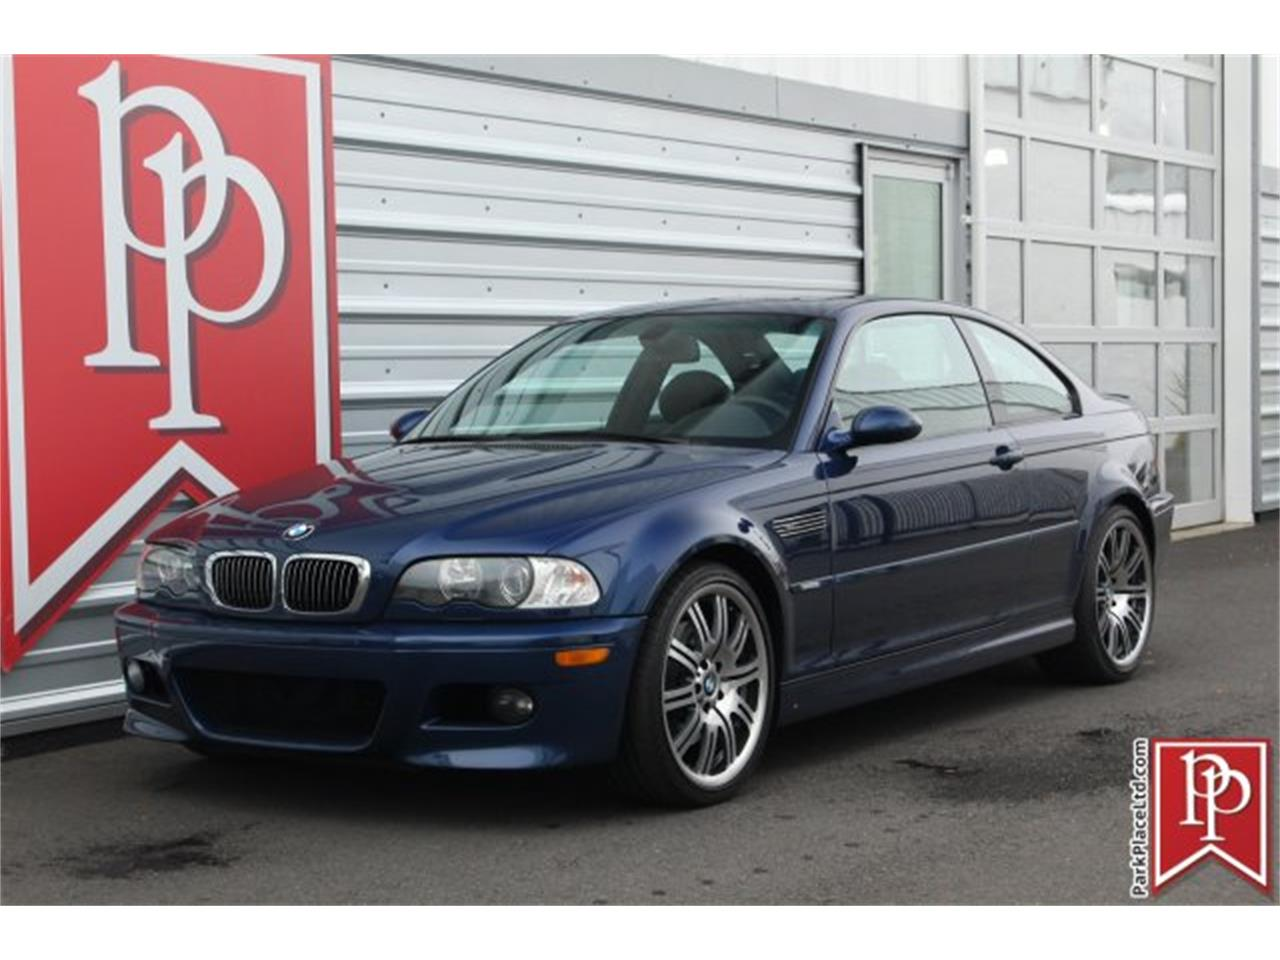 Large Picture Of 04 M3 Osh4